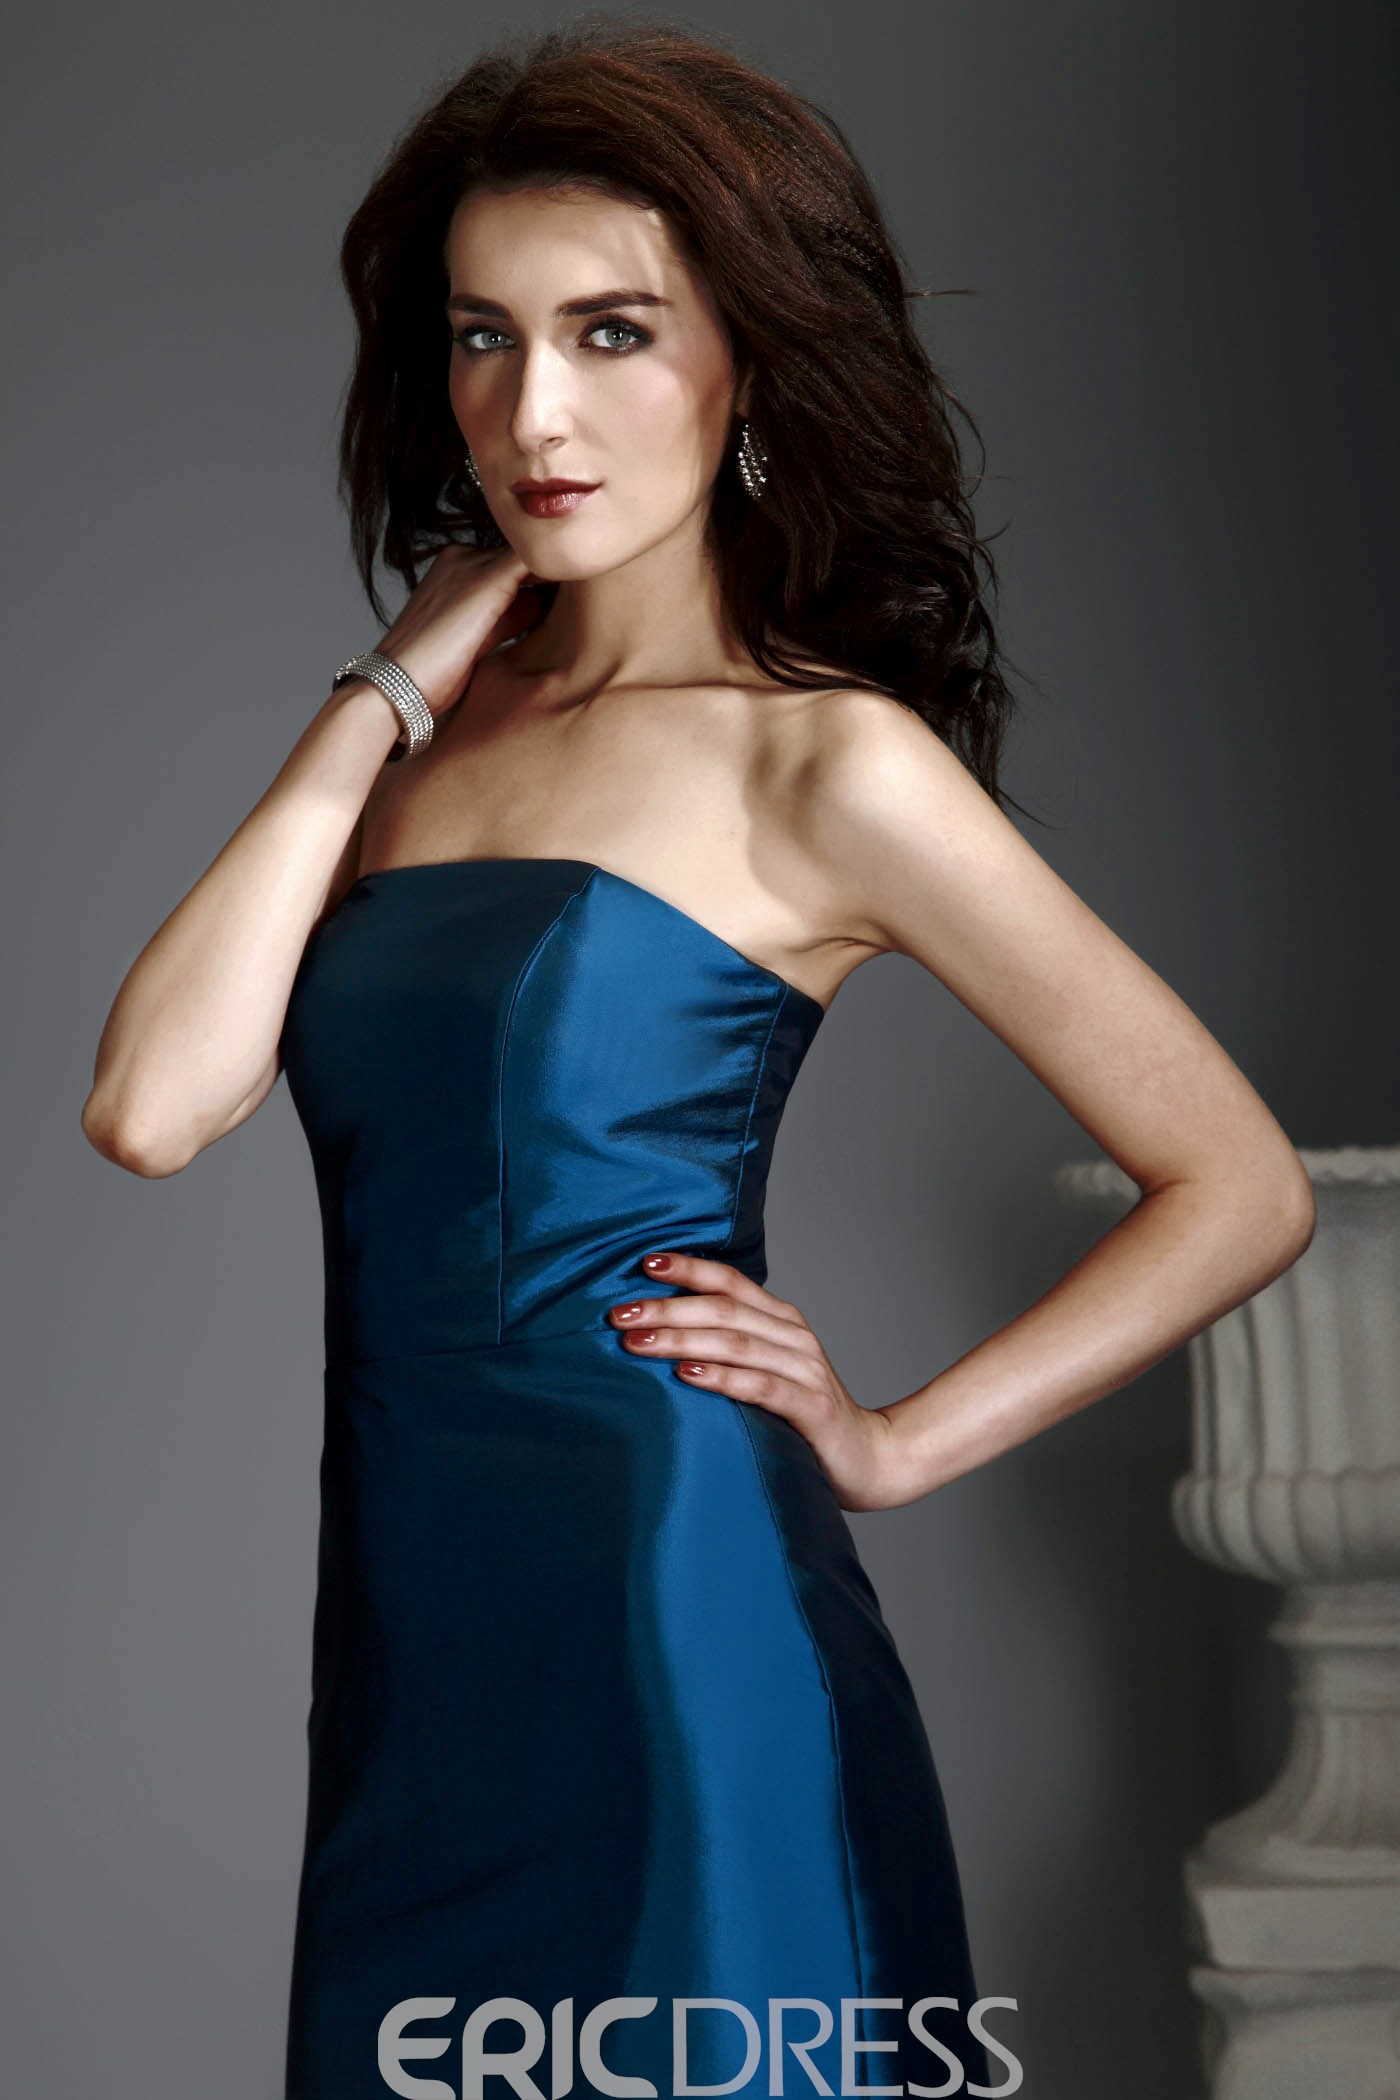 Delicated Sheath/Column Scoop Neckline Knee-Length Alex's Mother of the Bride Dress With Jacket/Shawl